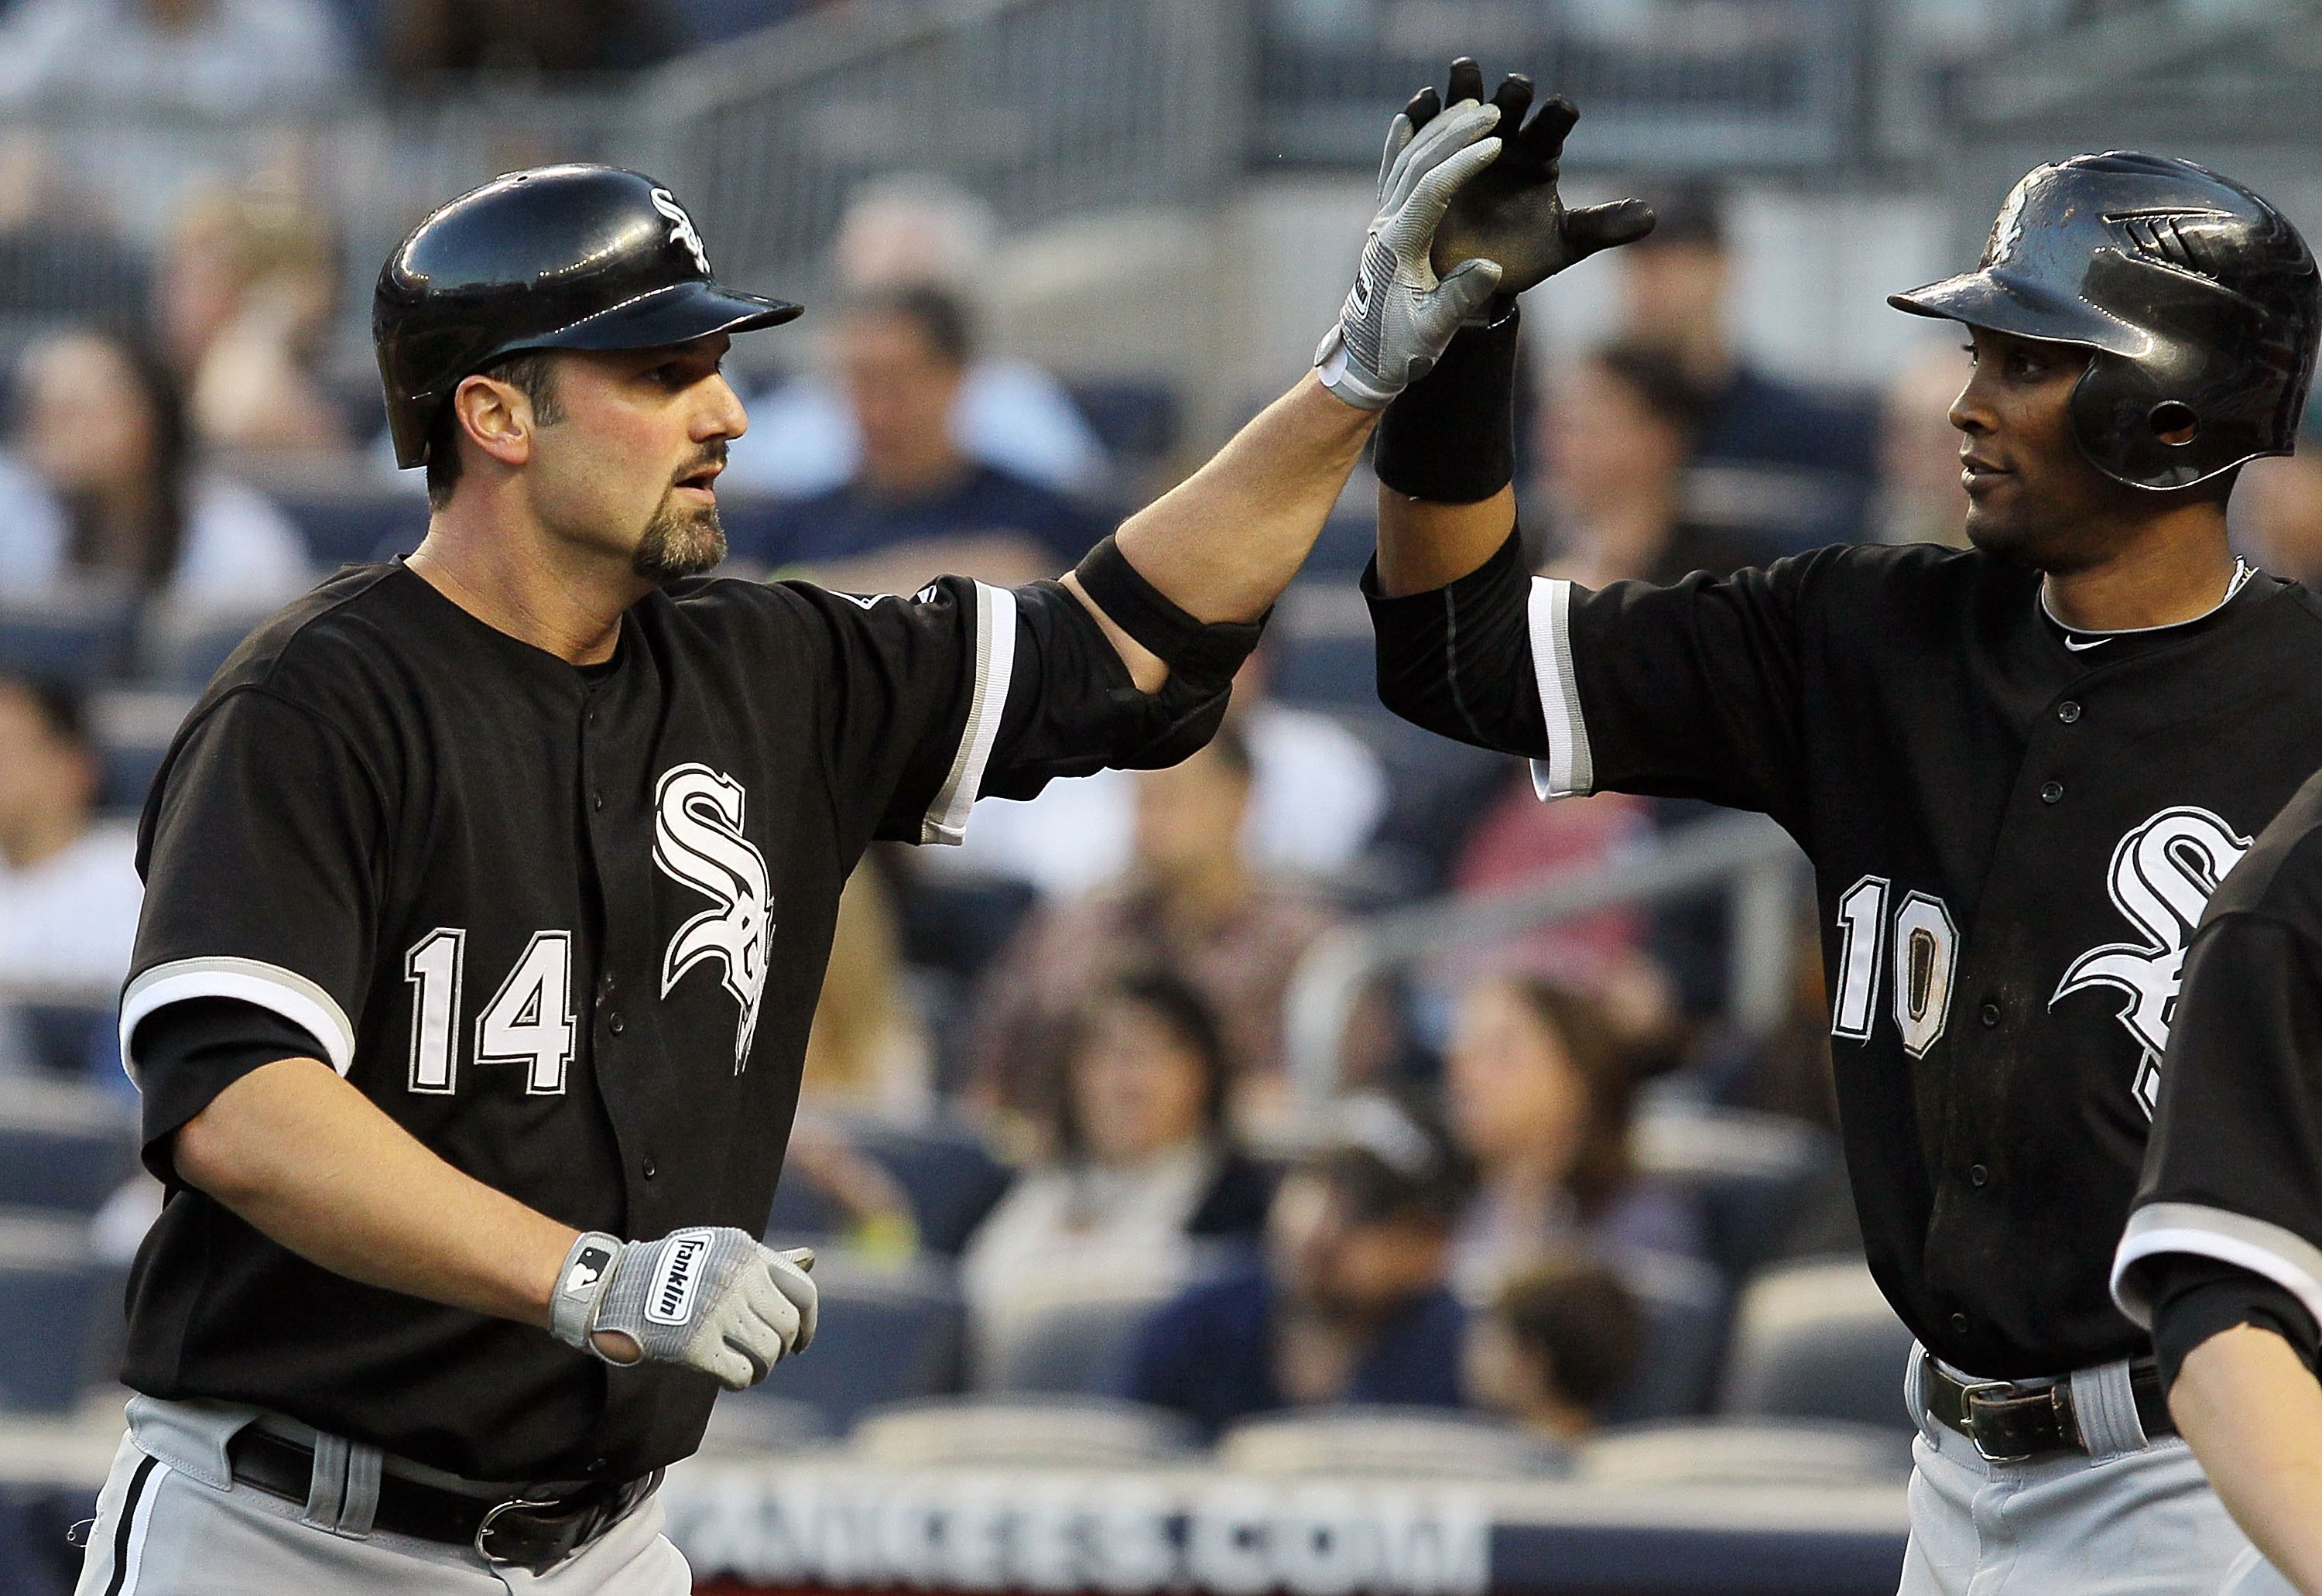 NEW YORK - APRIL 30:  Paul Konerko #14 of the Chicago White Sox celebrates his first inning three run home run against the New York Yankees with teammate Alexei Ramirez #10 on April 30, 2010 at Yankee Stadium in the Bronx borough of New York City.  (Photo